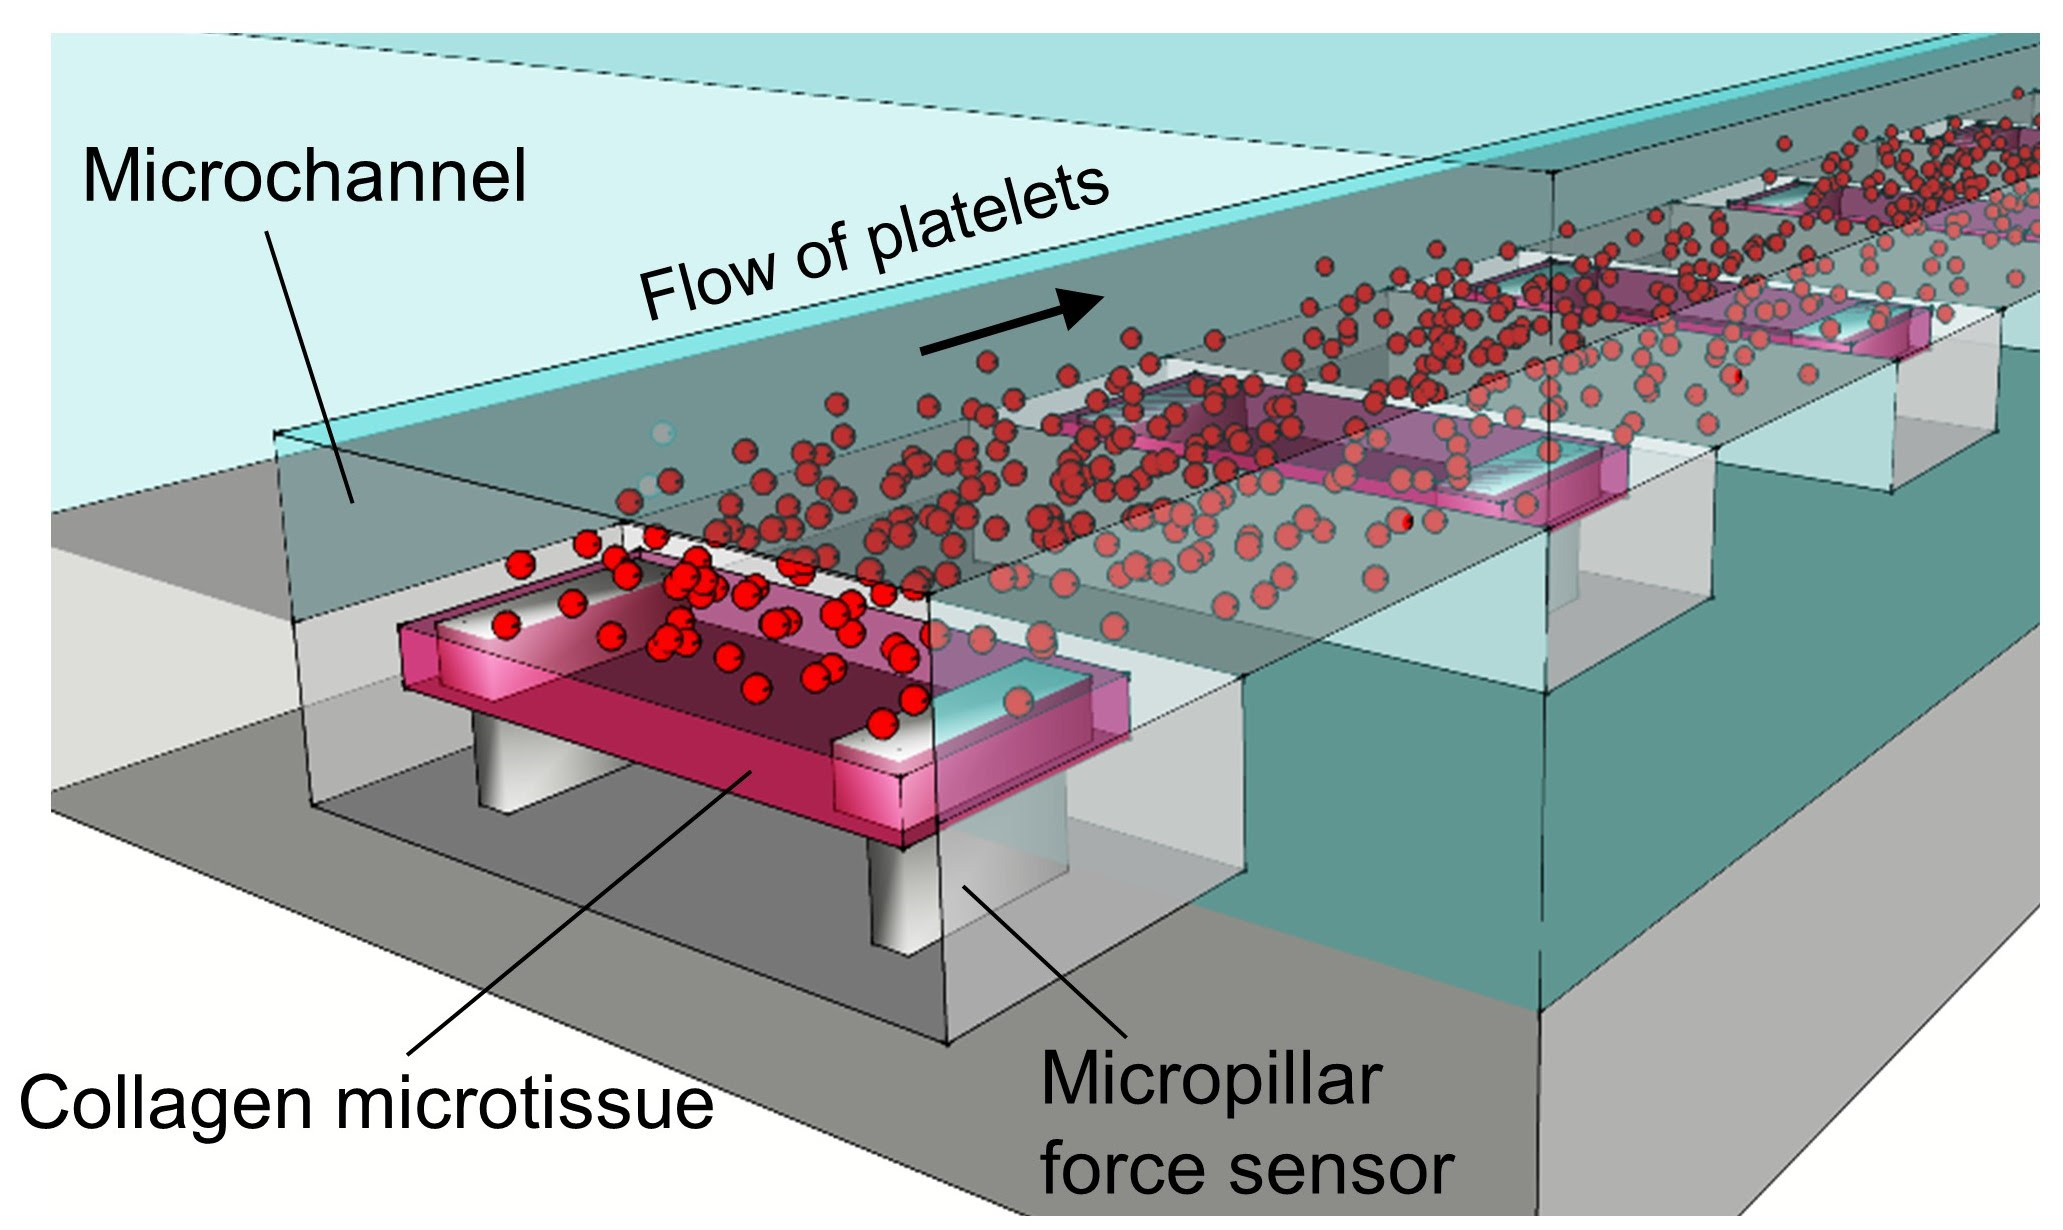 This diagram demonstrates how the engineered tissue model works to mimic the clotting upon blood vessel injury. Platelets adhere to the collagen microtissue that represents the collagen layer in the blood vessel. The micropillars that support the microtissue sense the stiffness of the microclots that form when exposed to different flow rates, which mimic venous or arterial flow in the body.​ (Credit: Zhao, Neelamegham, et al., from their paper in Nature Communications)